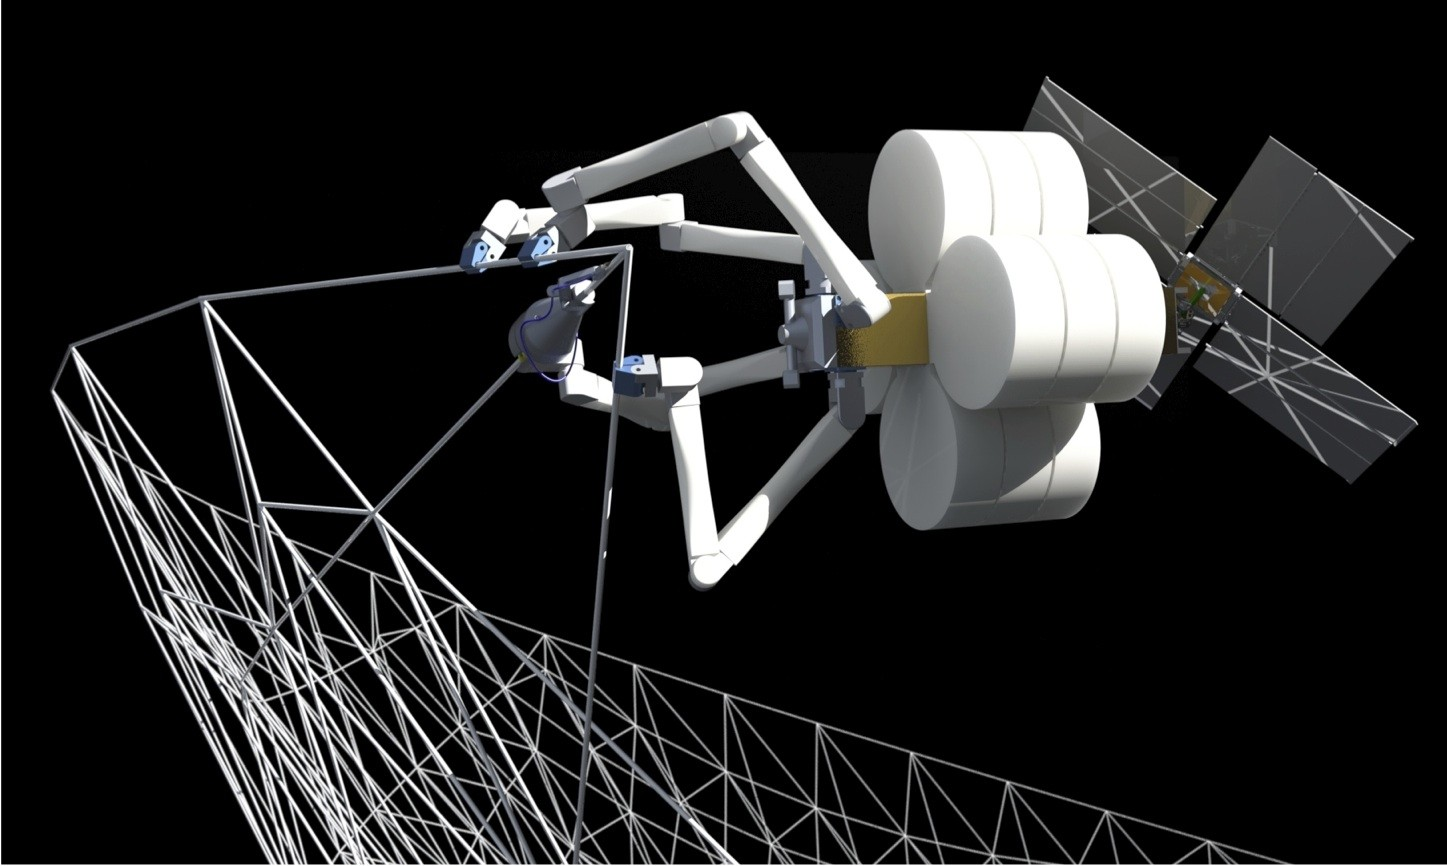 NASA Plans to 3D Print Spacecraft in Orbit, © Tethers Unlimited Inc.